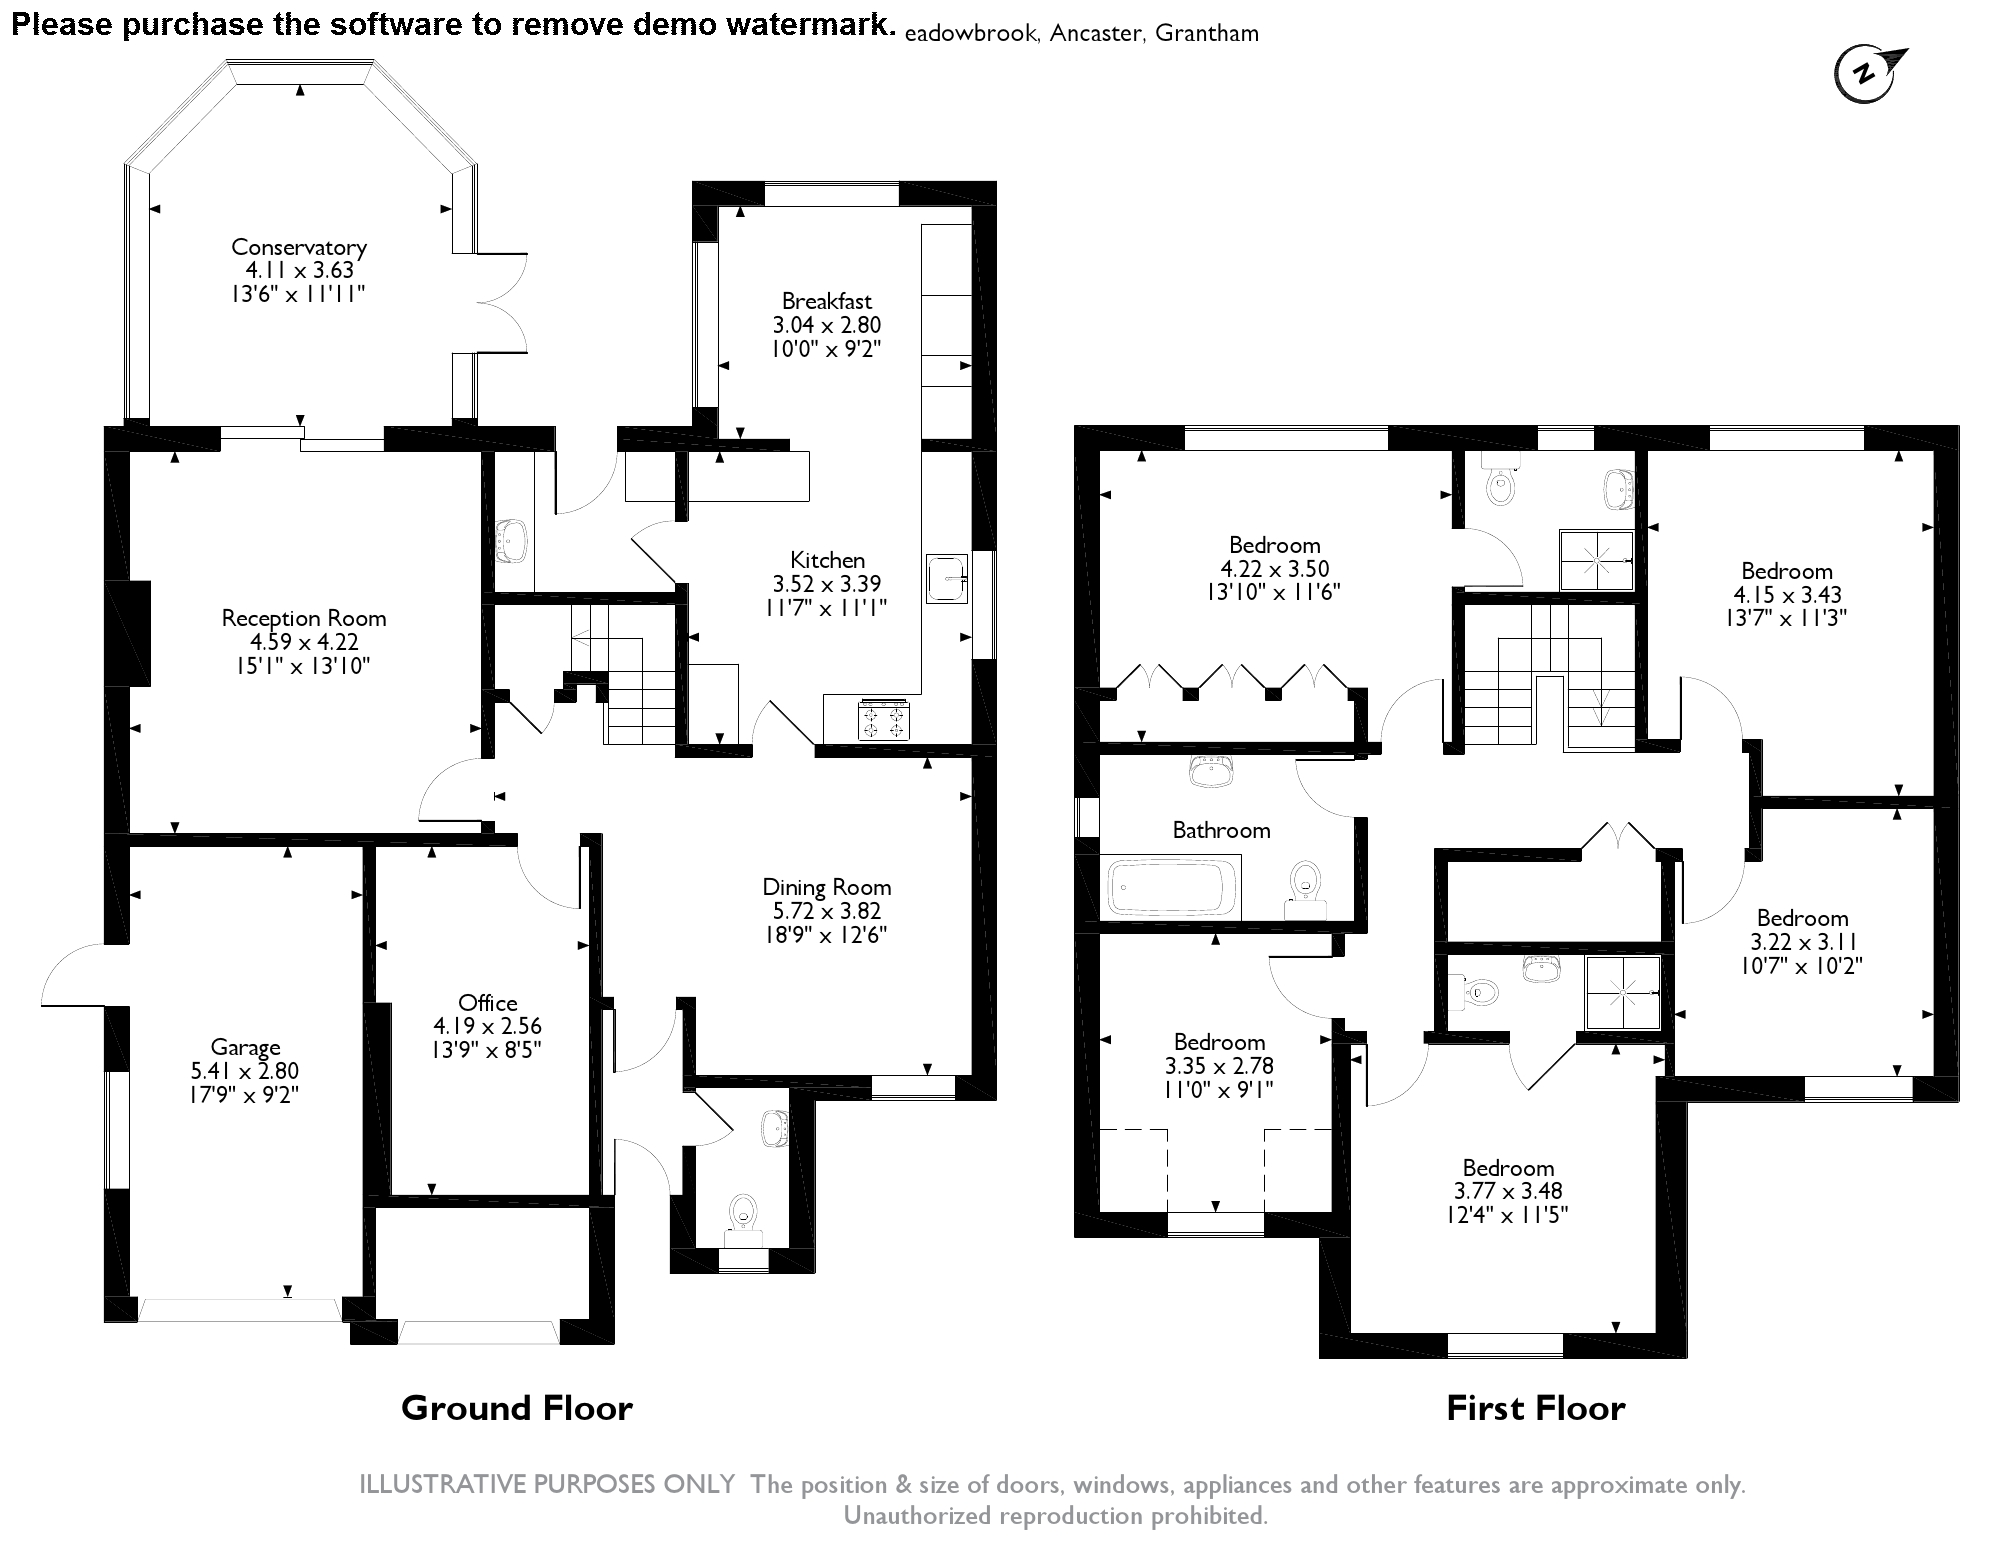 Meadowbrook, Grantham, NG32 floor plan